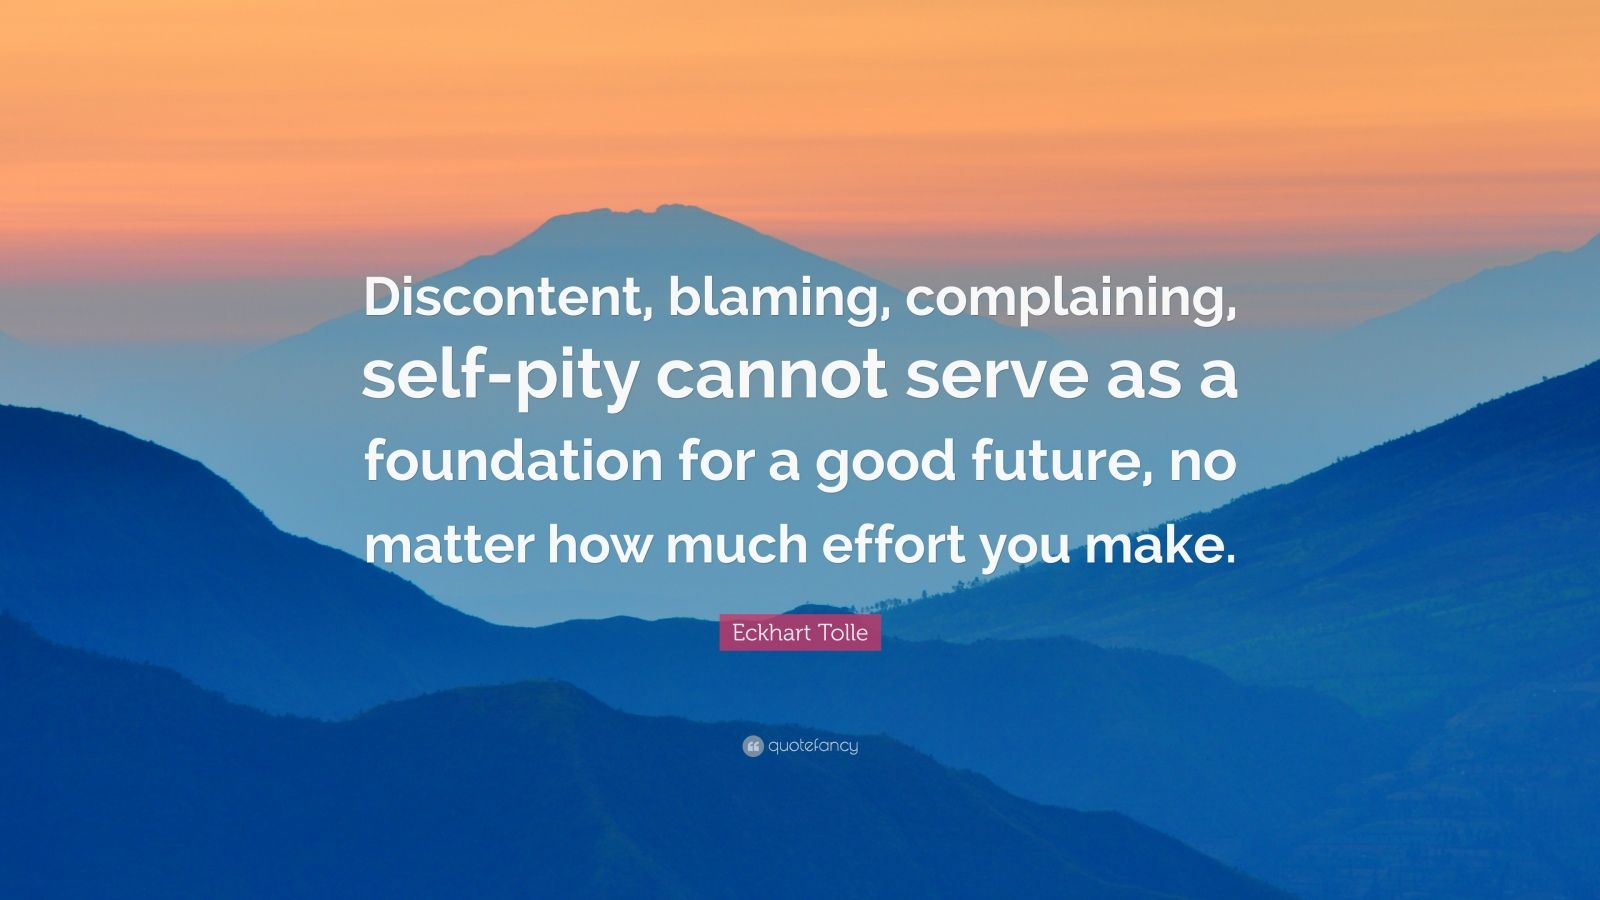 """Eckhart Tolle Quote: """"Discontent, blaming, complaining, self-pity cannot serve as a foundation for a good future, no matter how much effort you make."""""""